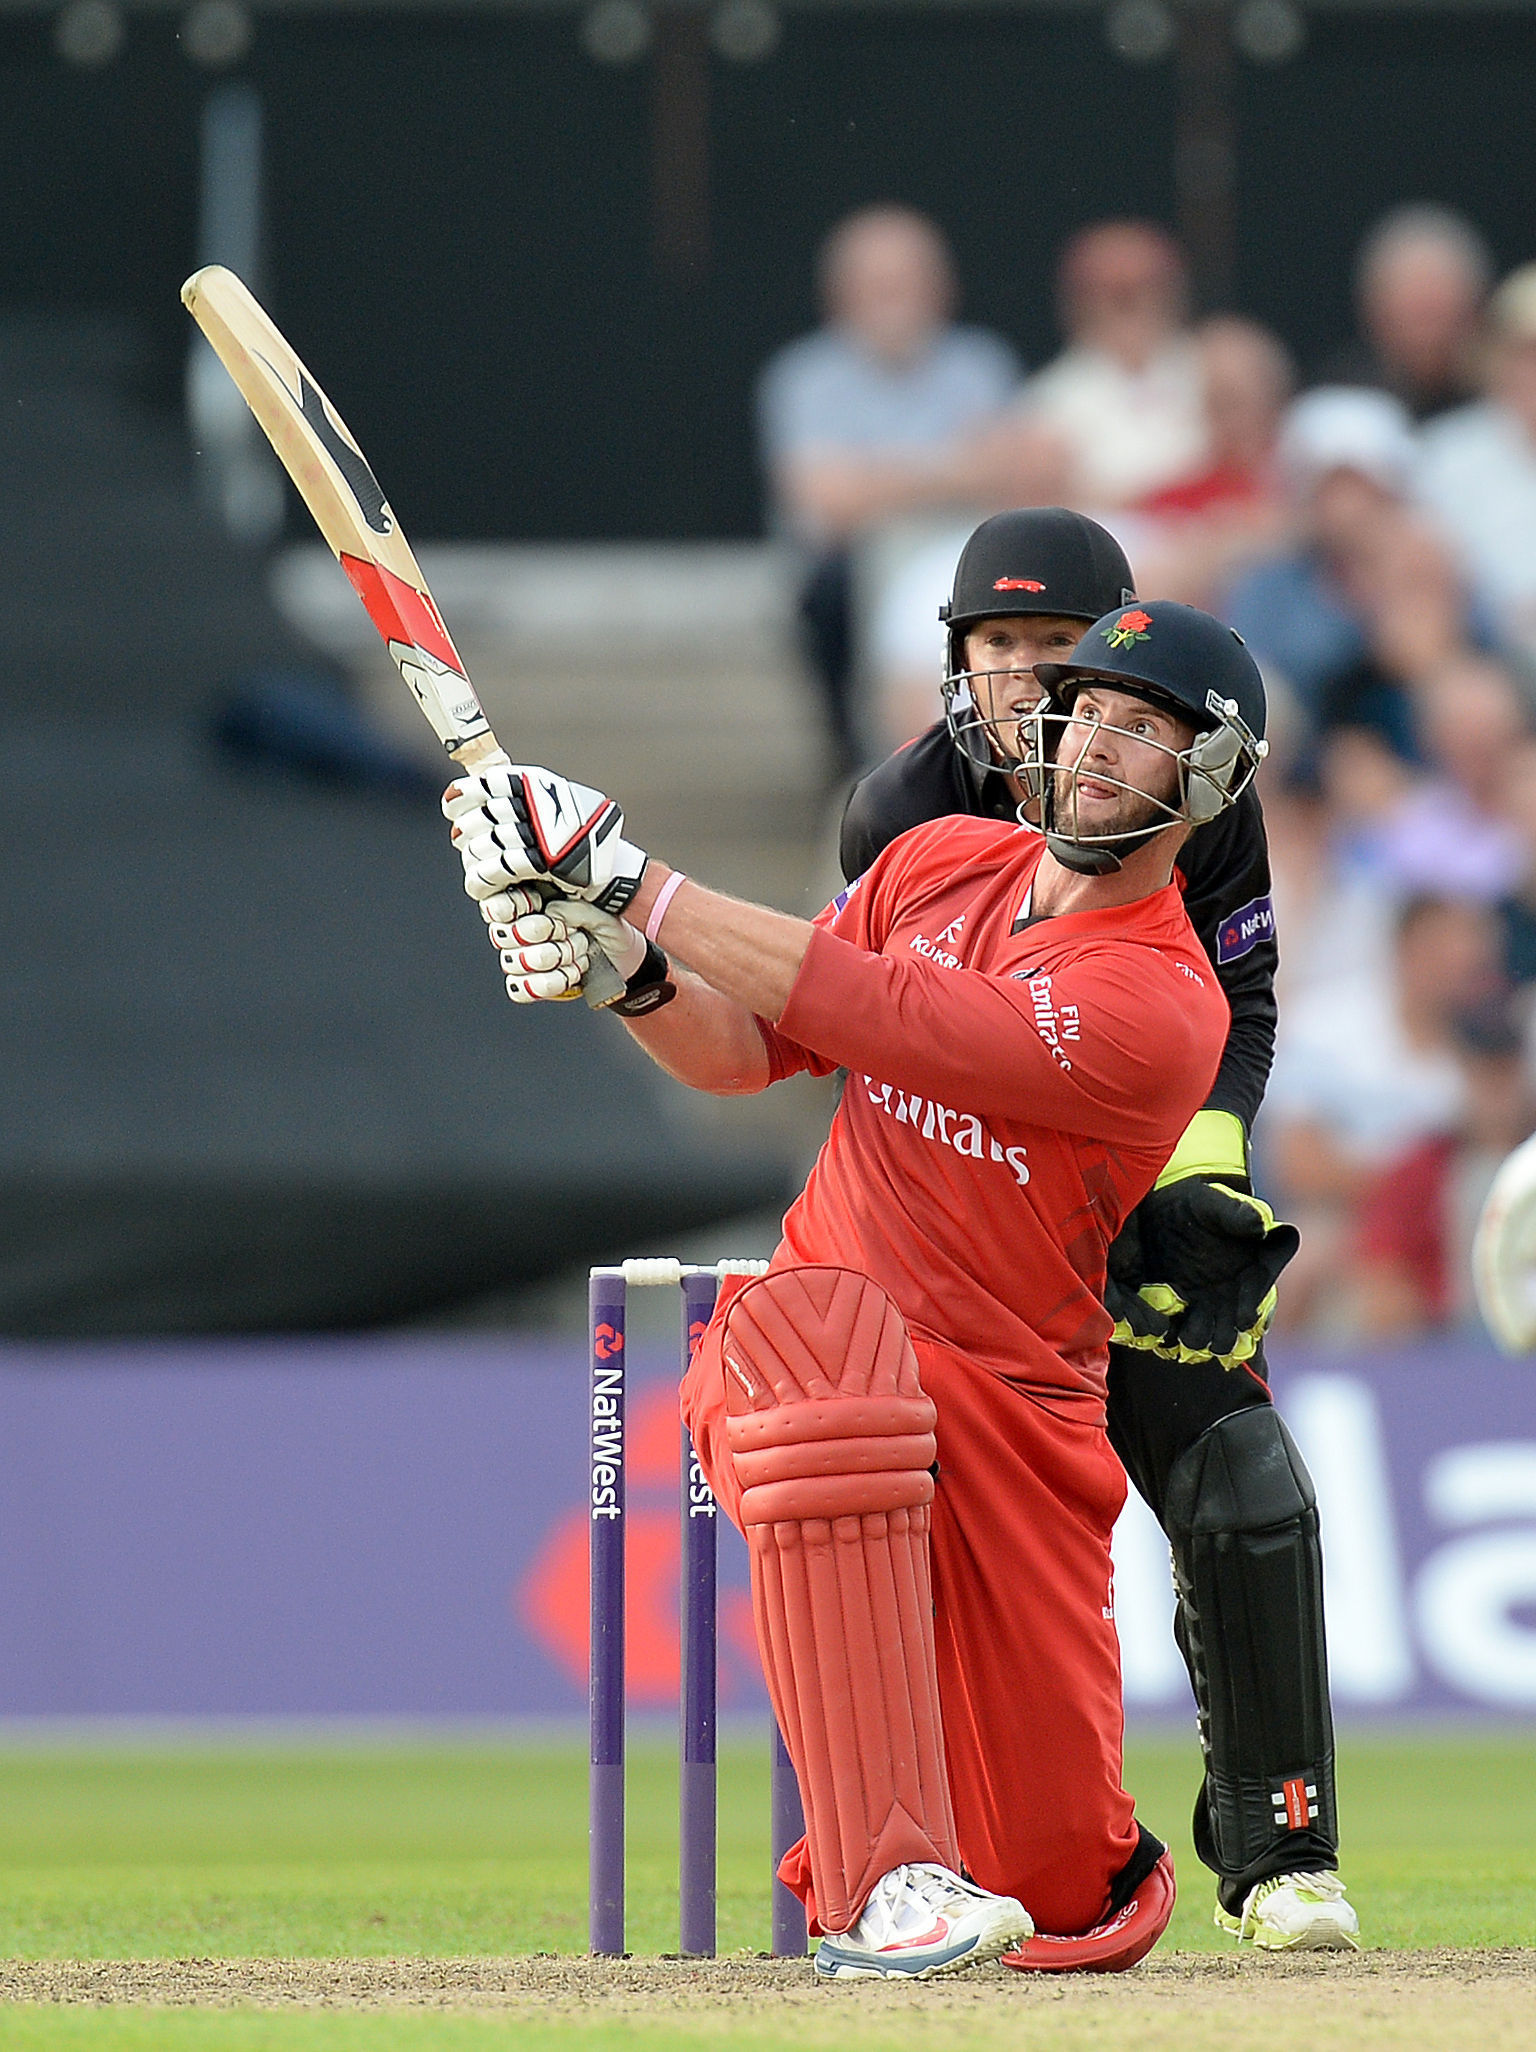 RETURN: Tom Smith, hitting a six against Leicestershire Foxes in the 2014 T20 tournament, is back fit for Lancashire this season